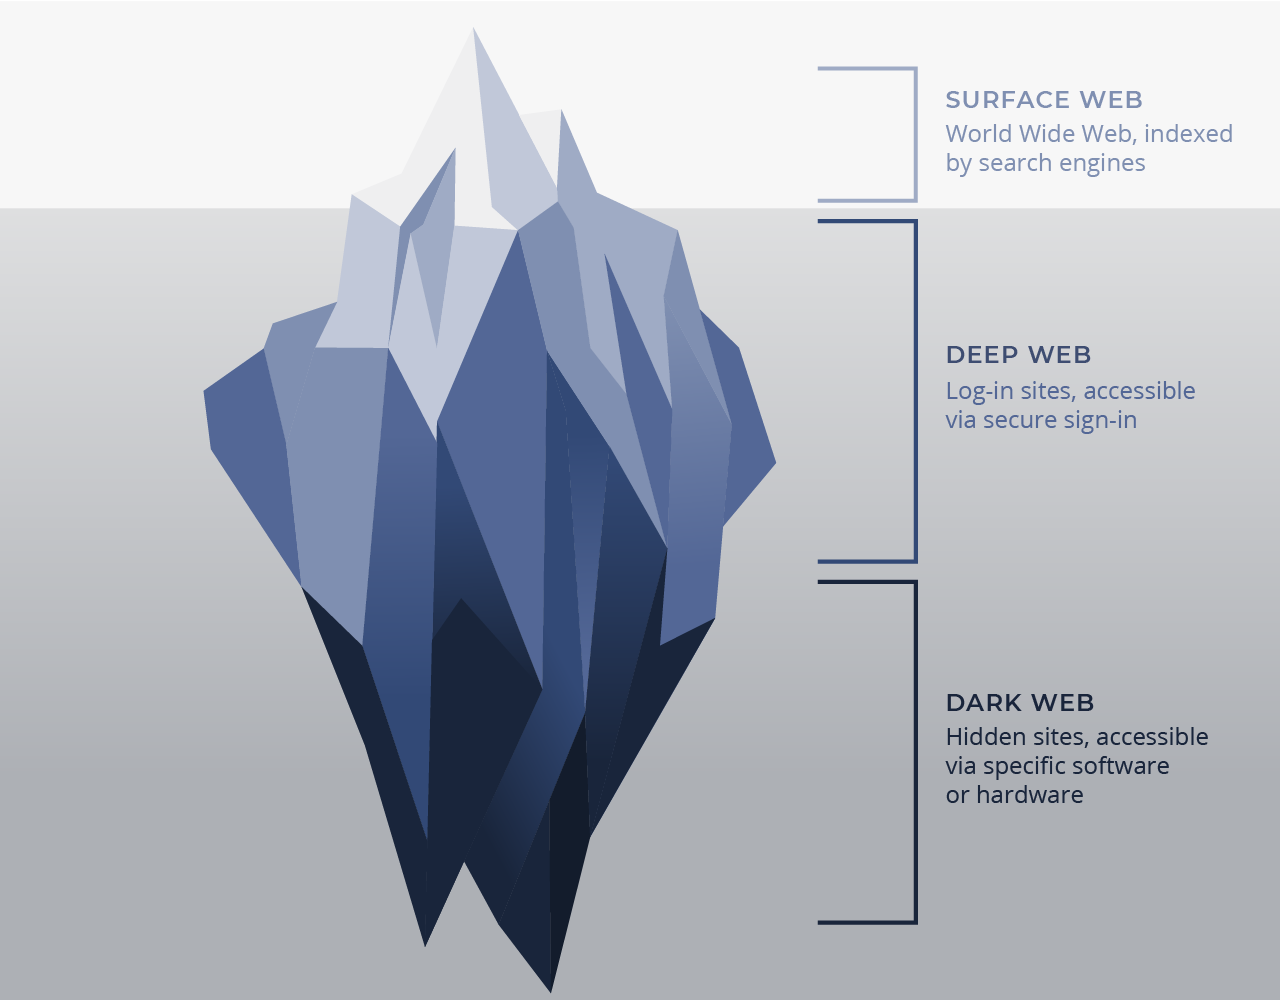 Deep and Dark Web Tiers